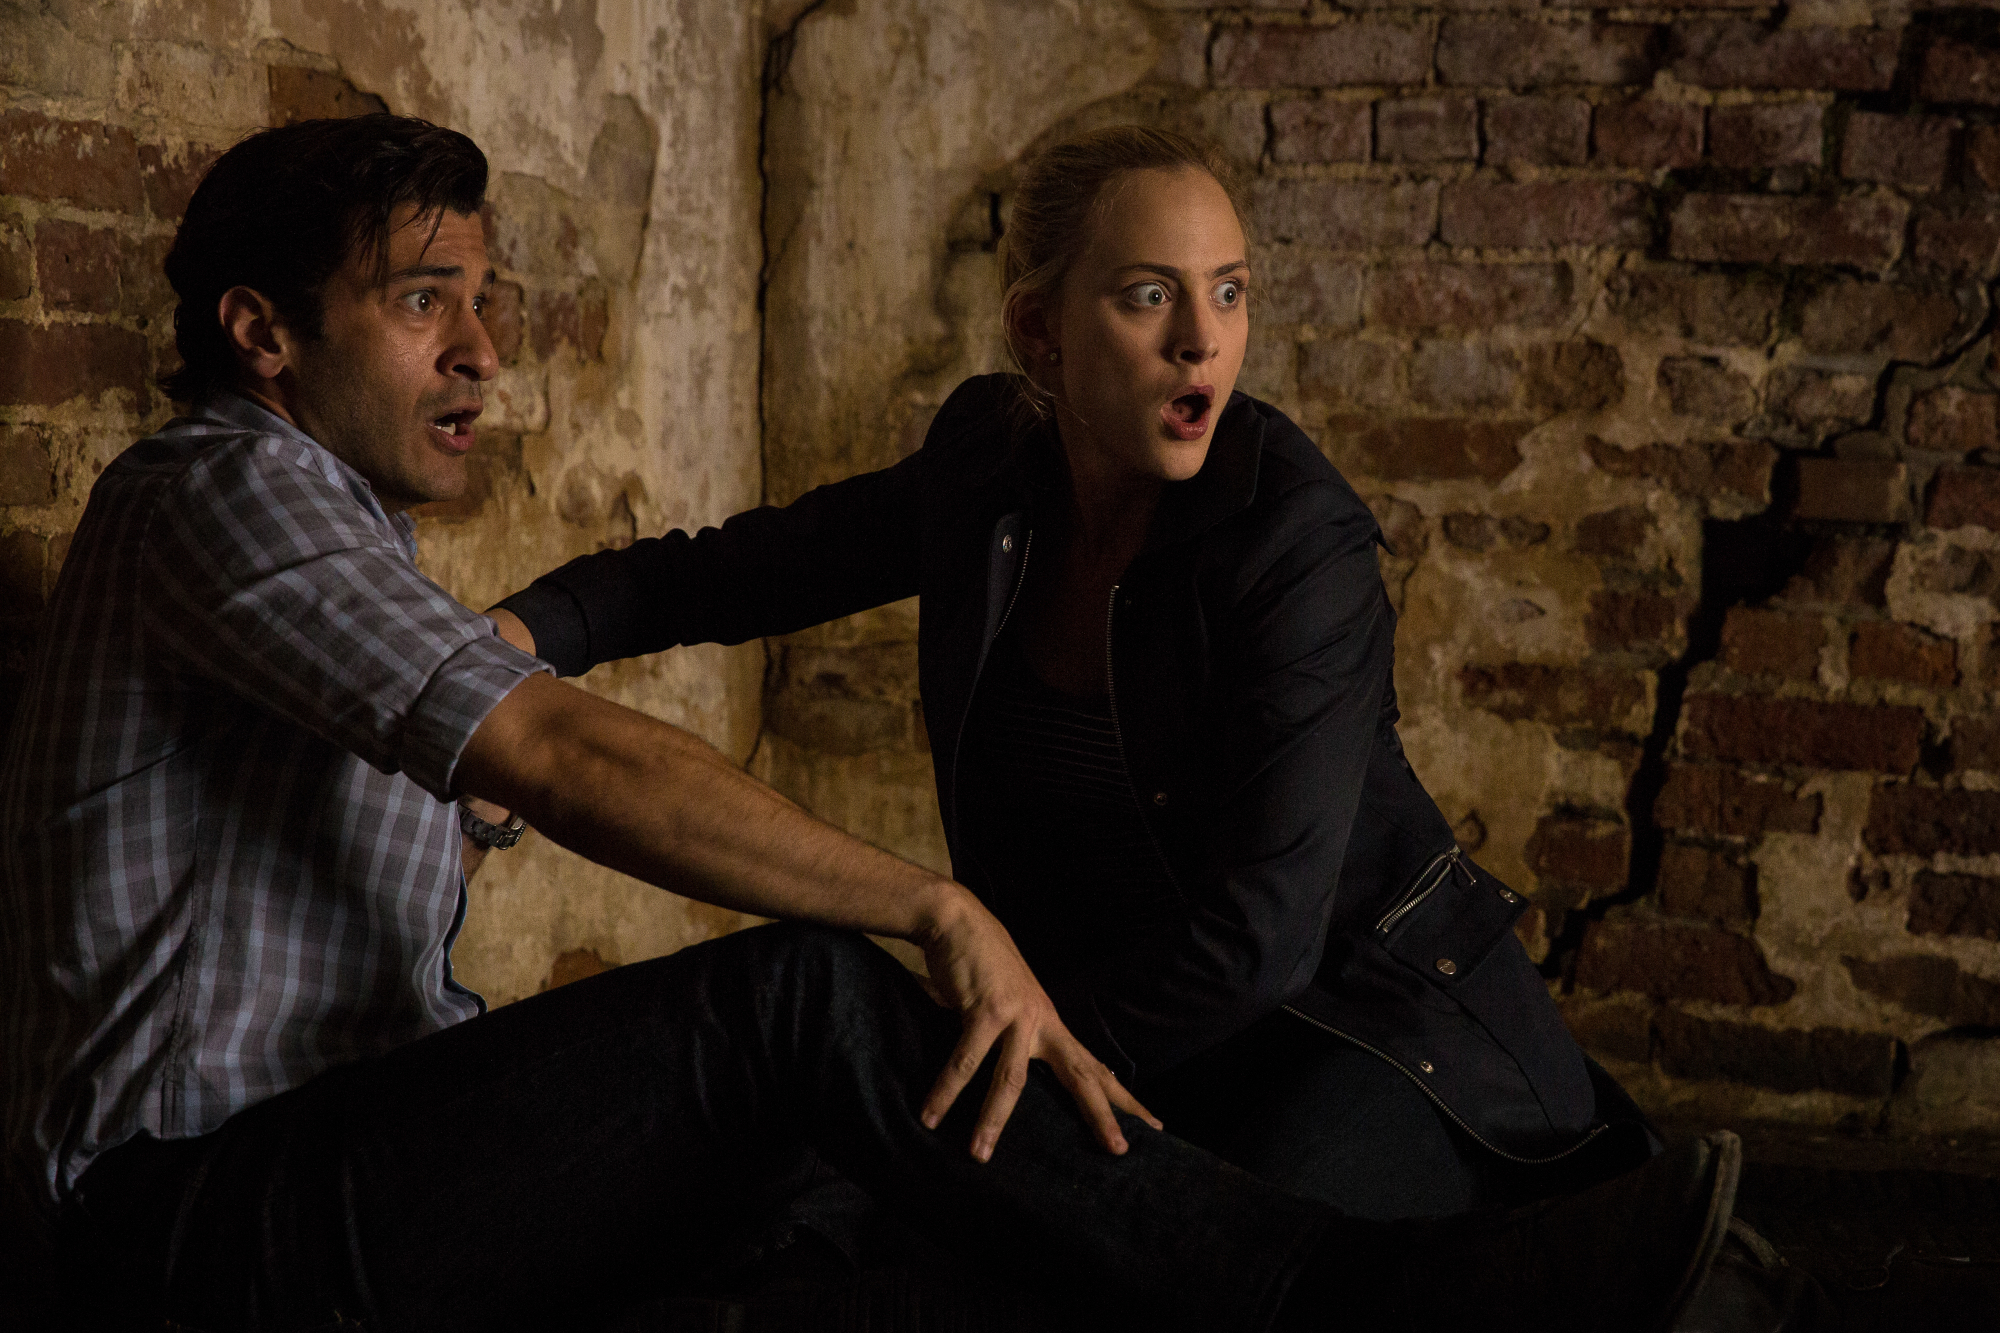 Simon Kassianides as Jean-Michel Lion and Nora Arnezeder as Chloe Tousignant.